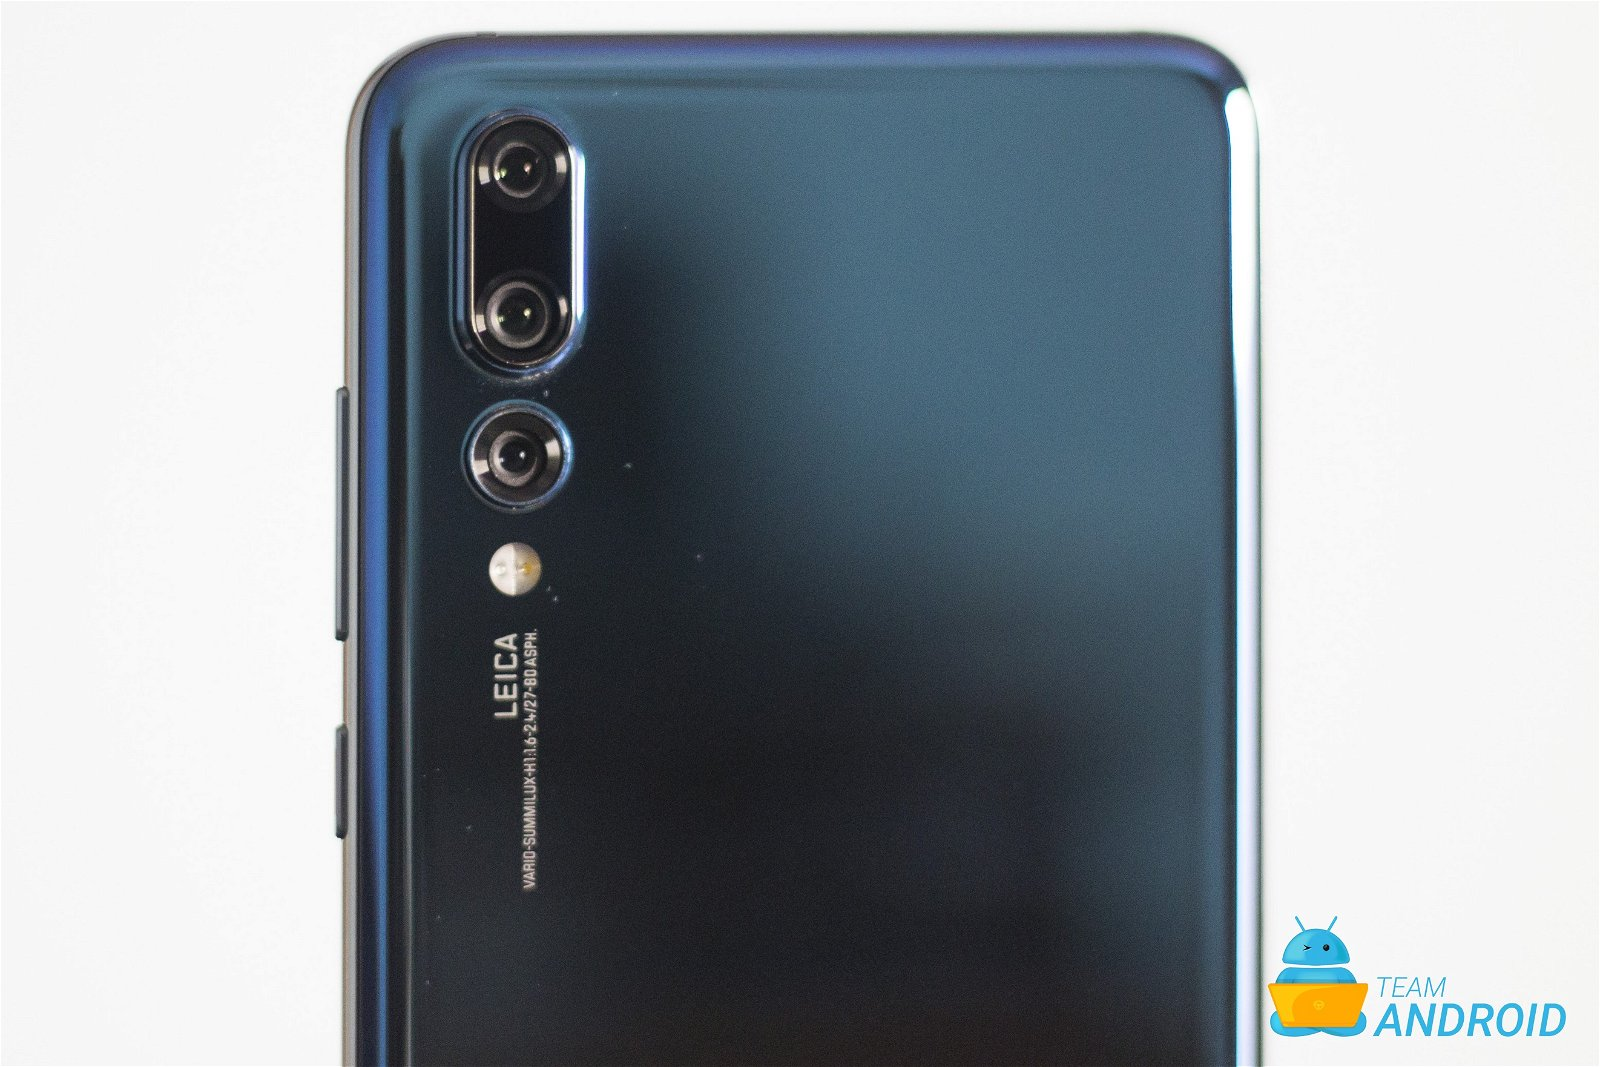 Install Huawei P20 Pro Camera App on Honor 9 Lite and Kirin 659 Devices